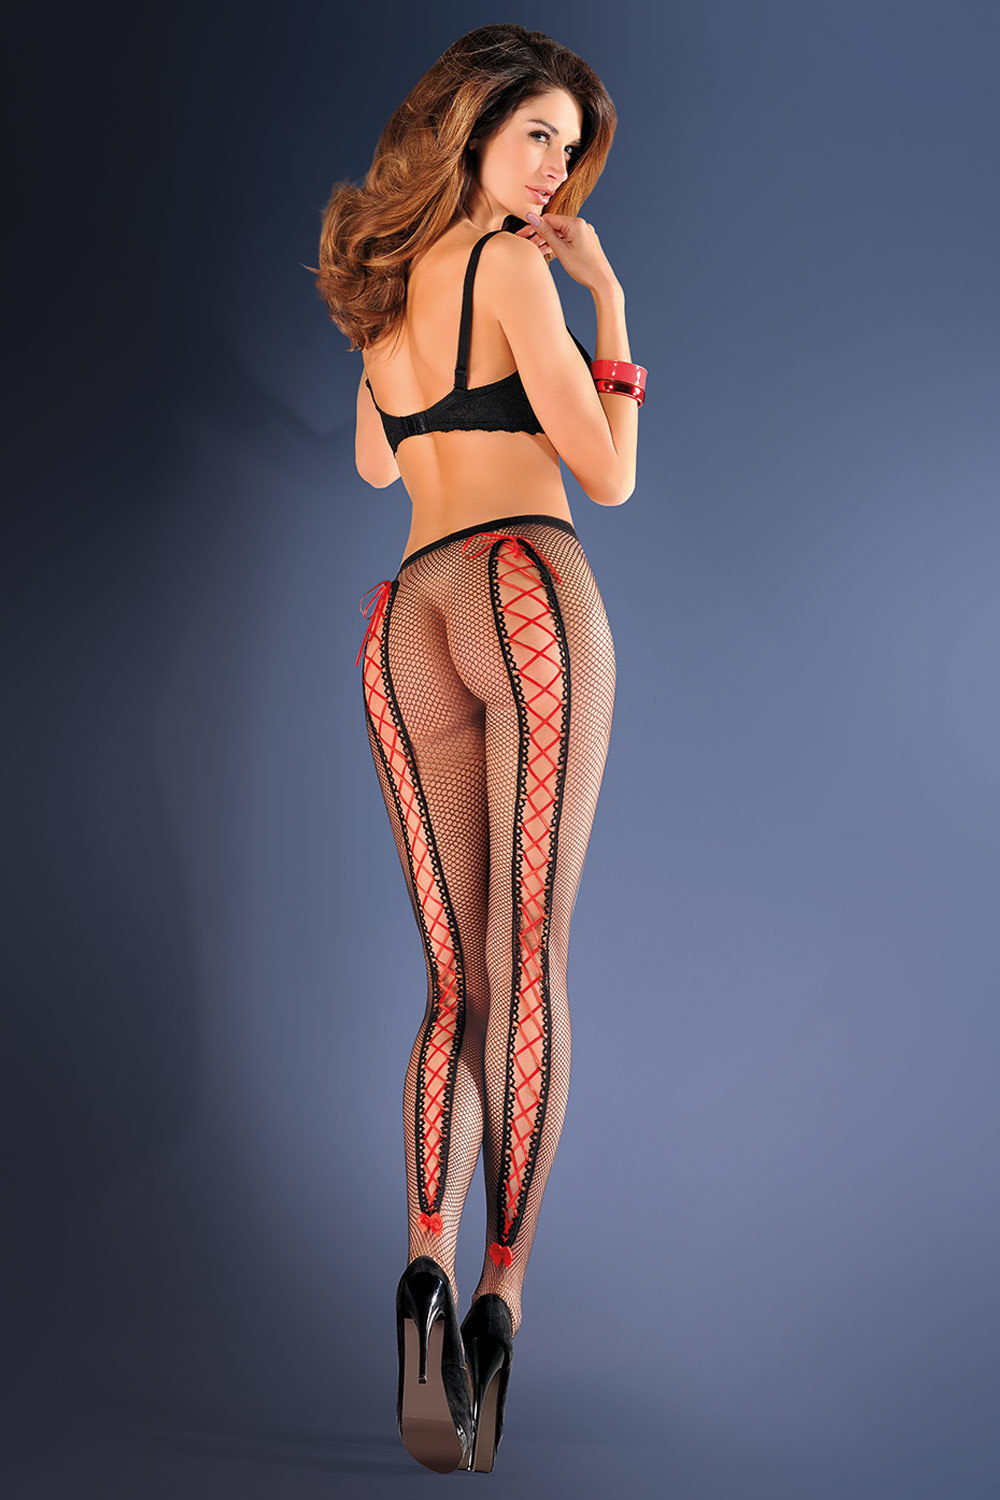 Tailor erotic bare ladies clothing sparks naked pussy